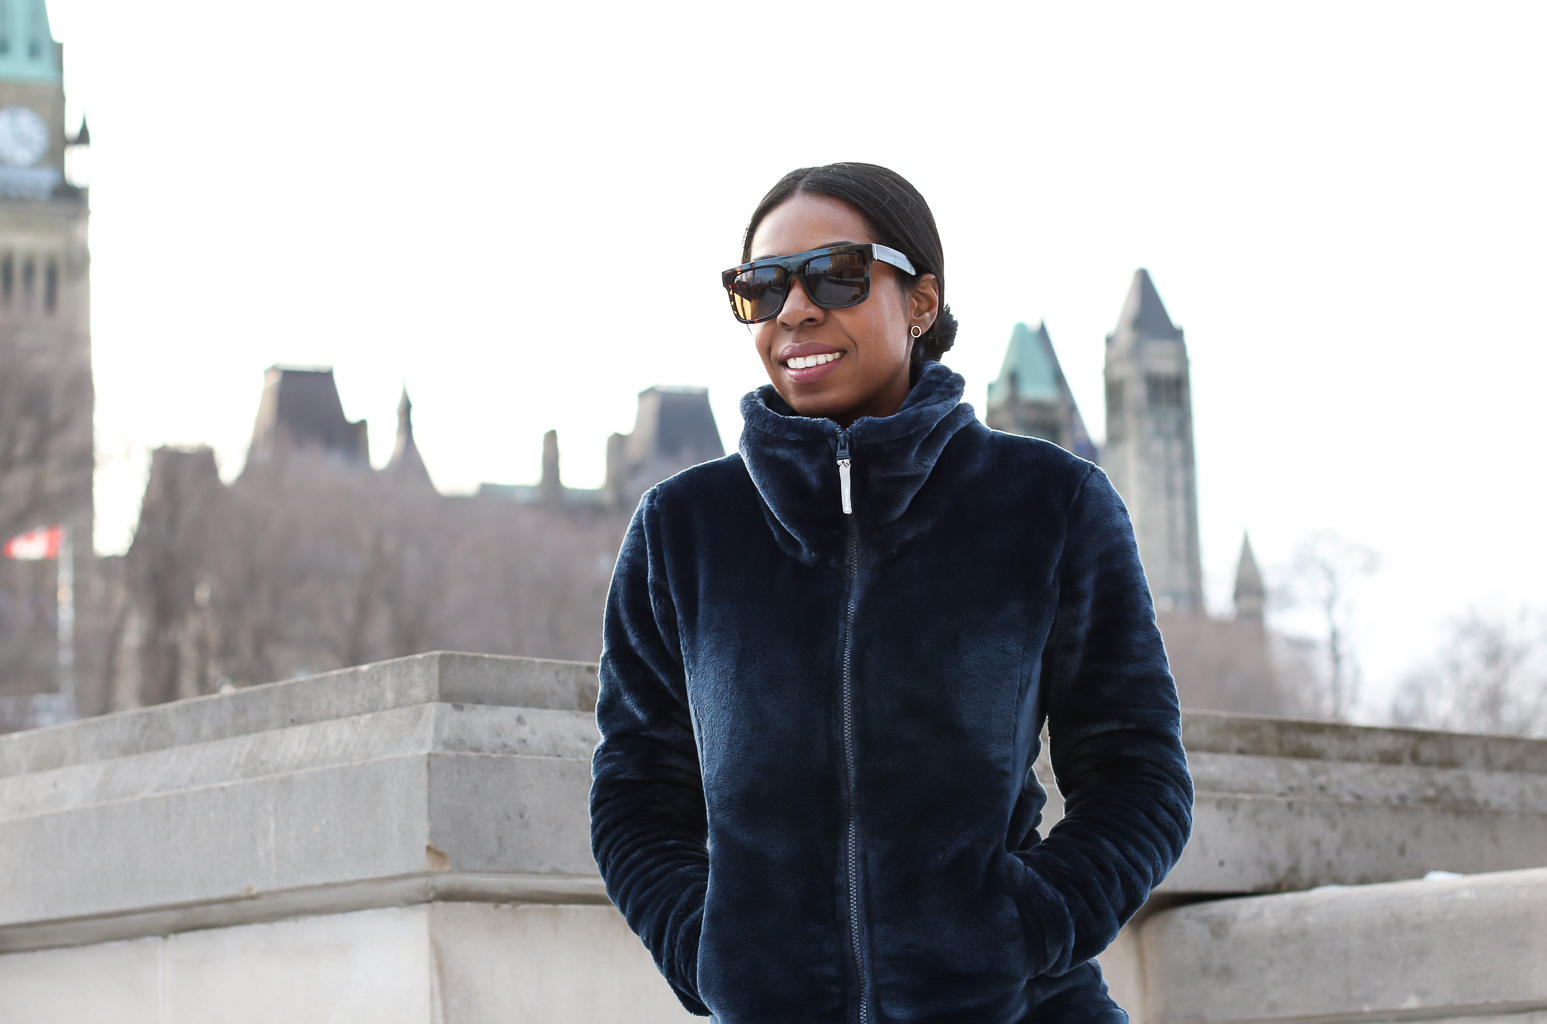 Bench Canada has everything you need to look great during your winter workout   Winter Workout Style - Bench Canada